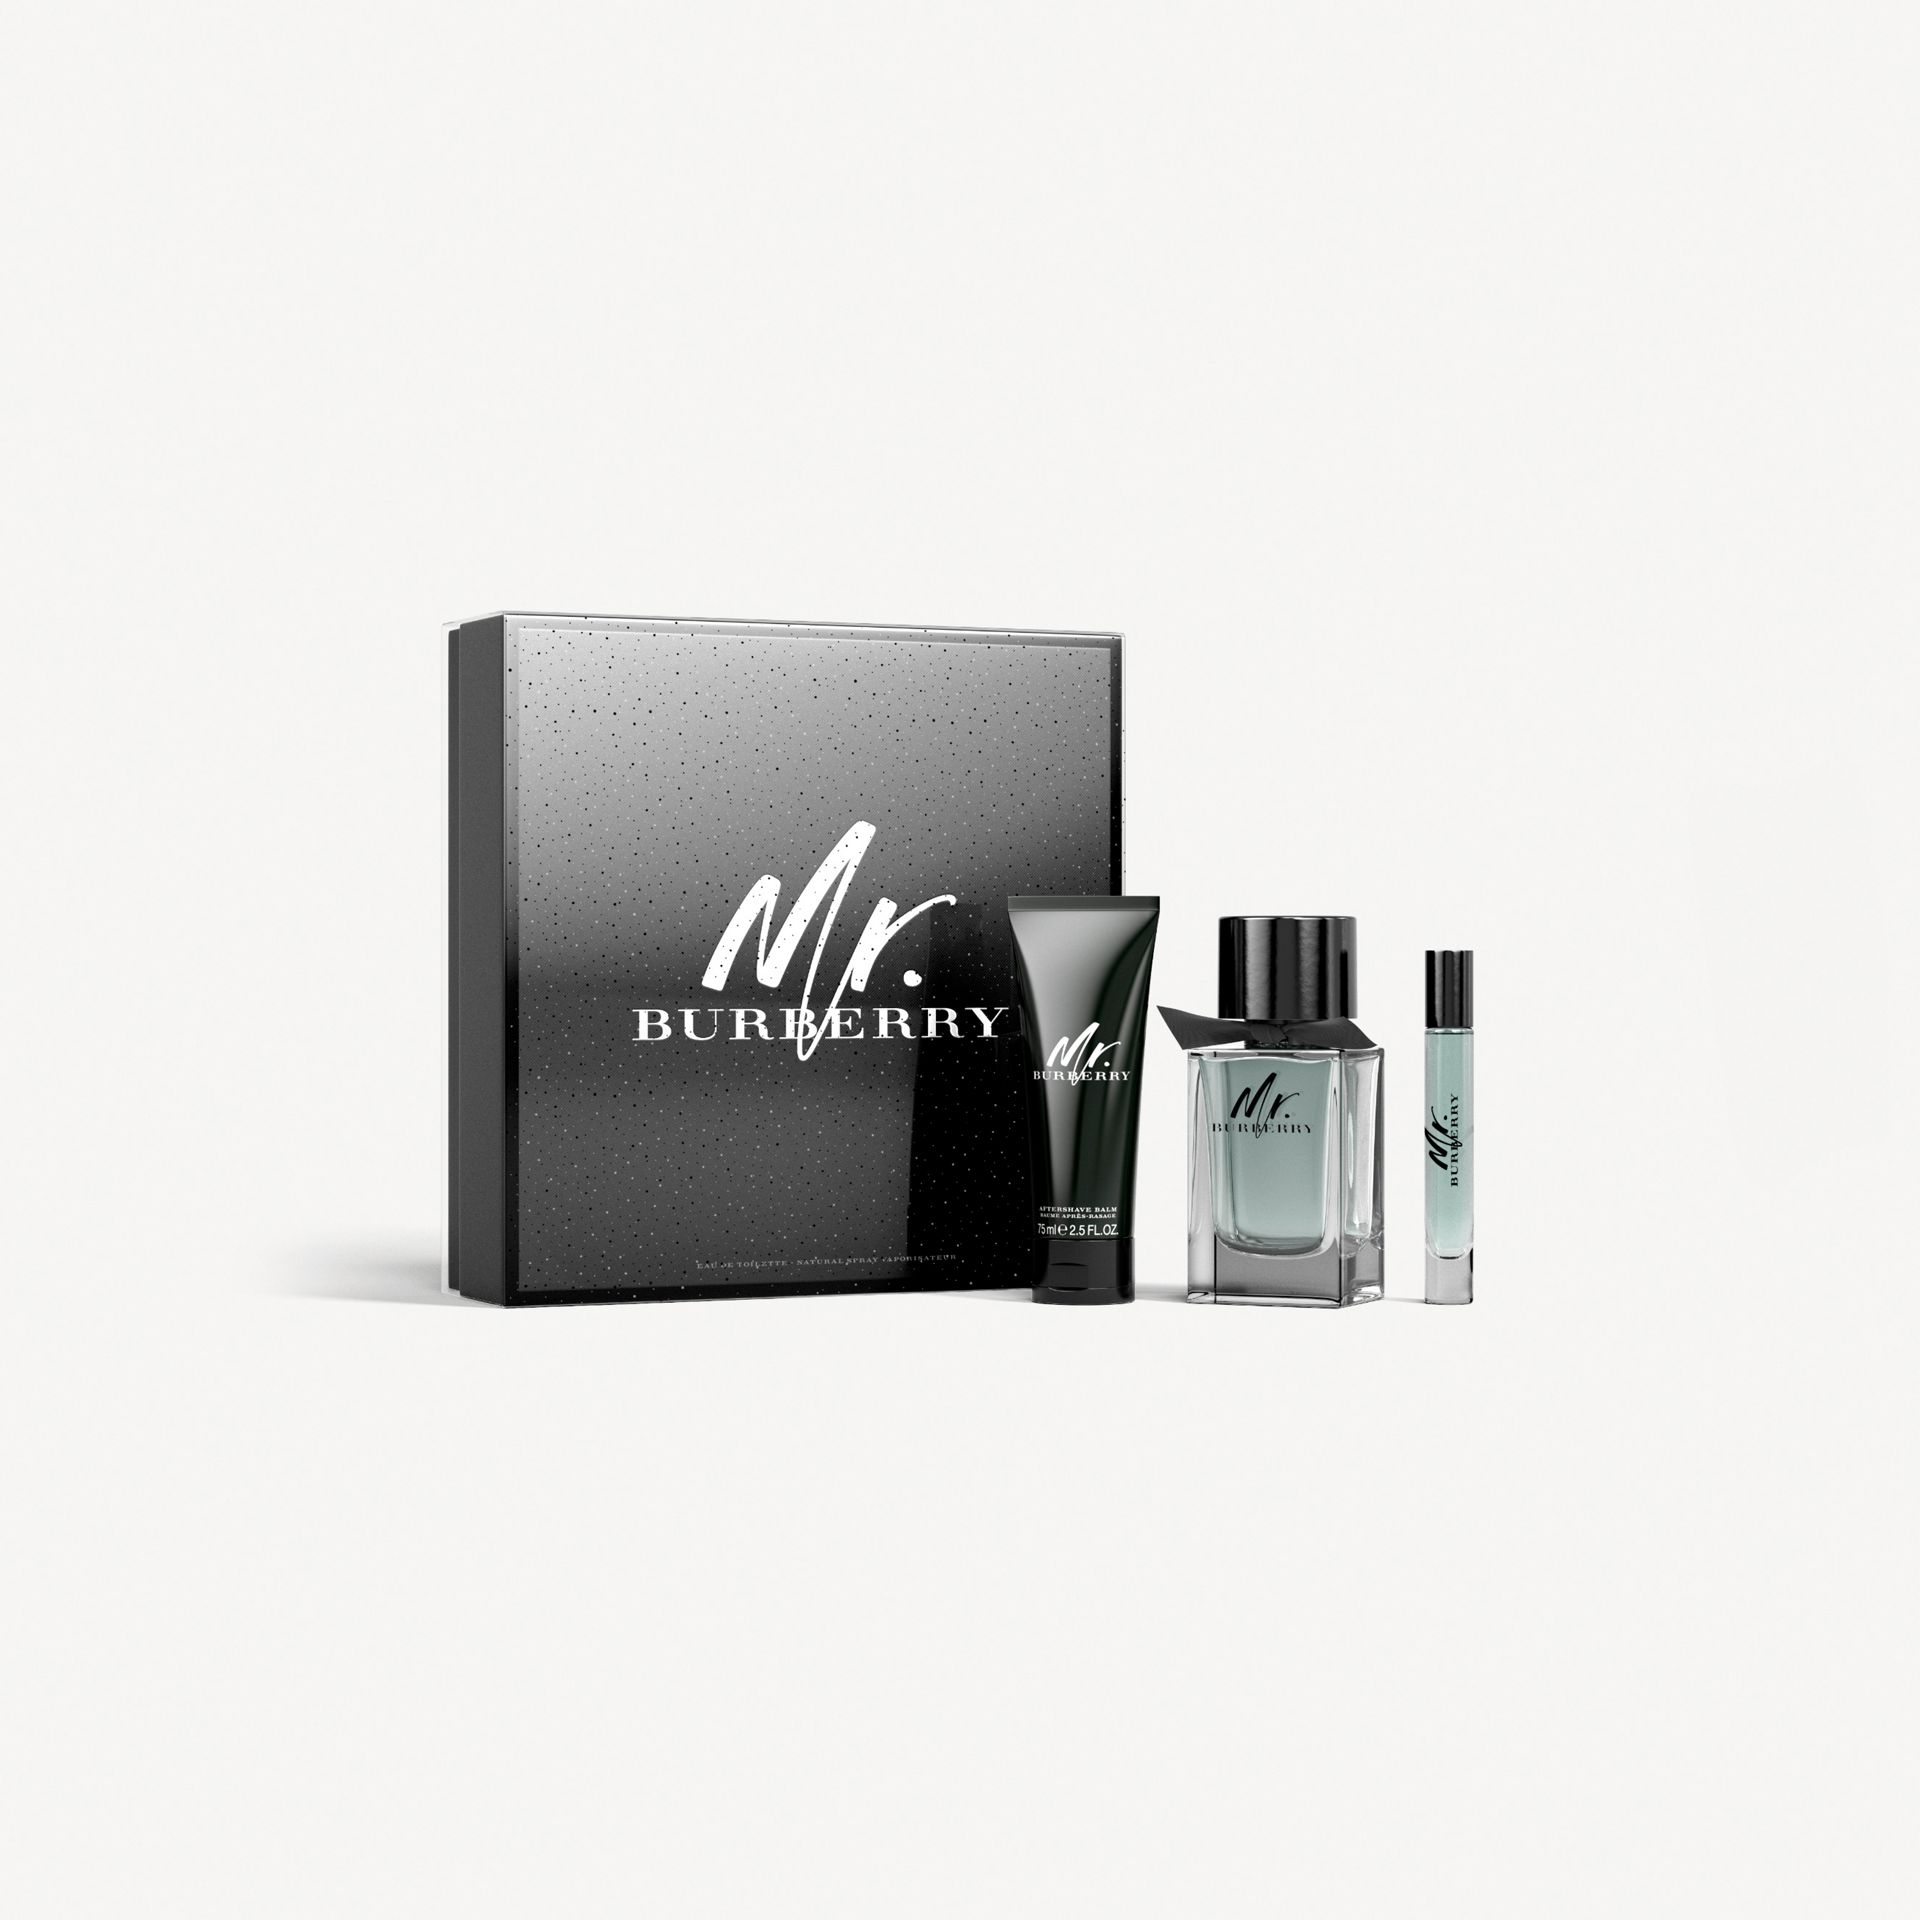 Mr. Burberry Eau de Toilette Festive Luxury Set in No Colour - Men | Burberry - gallery image 1